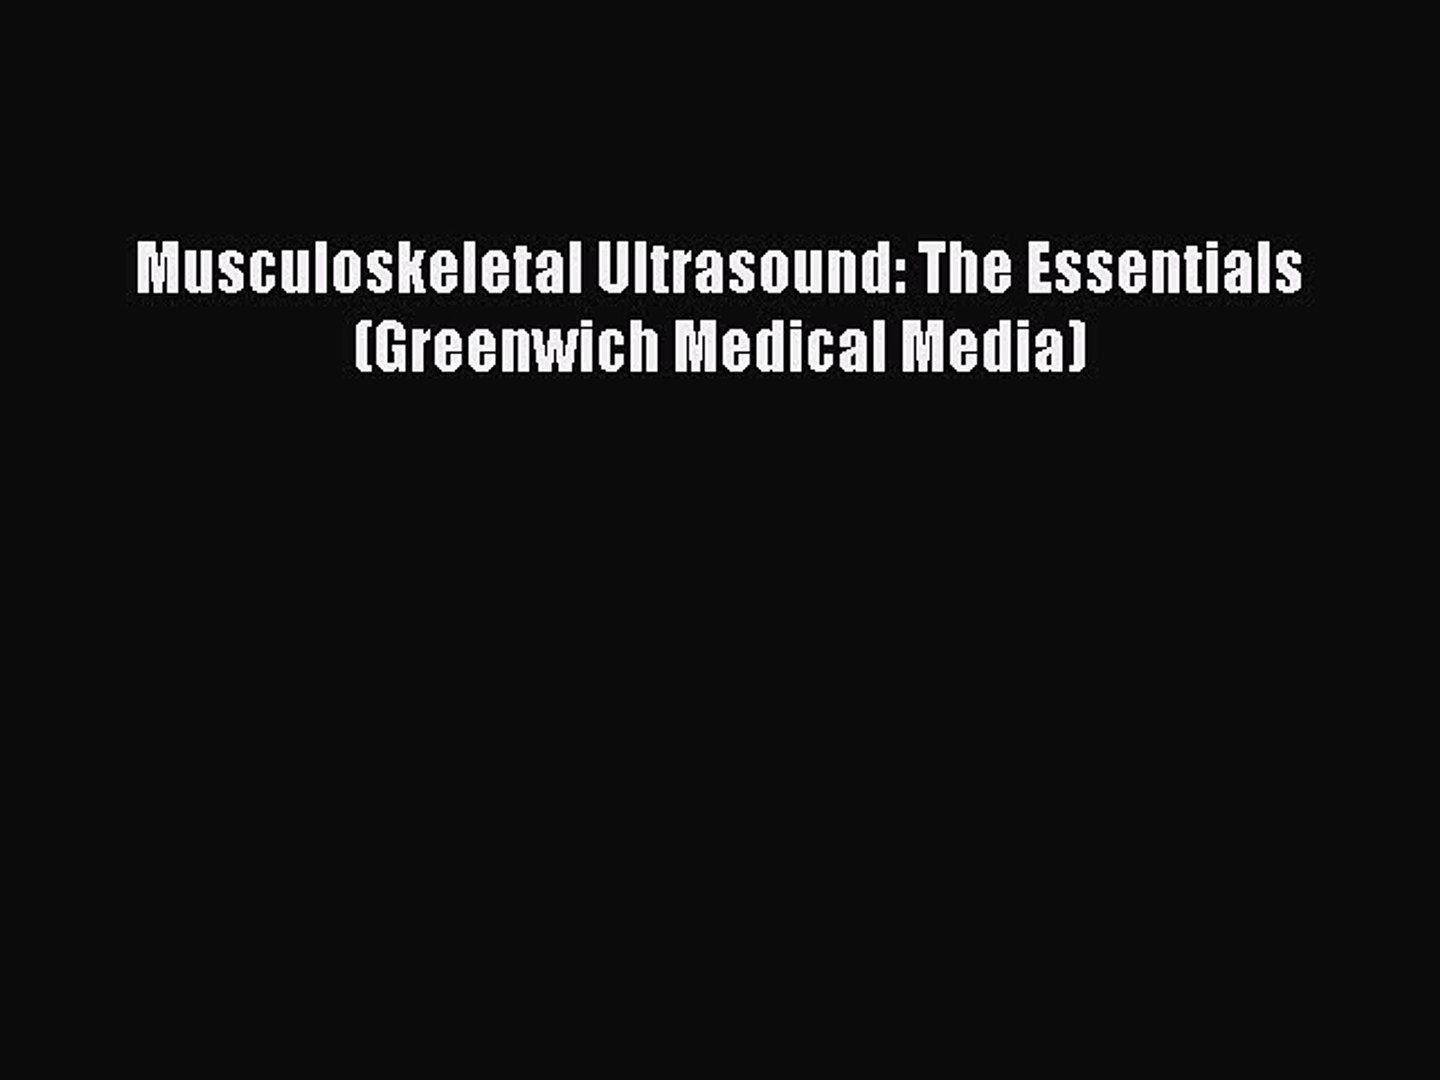 musculoskeletal ultrasound book free download